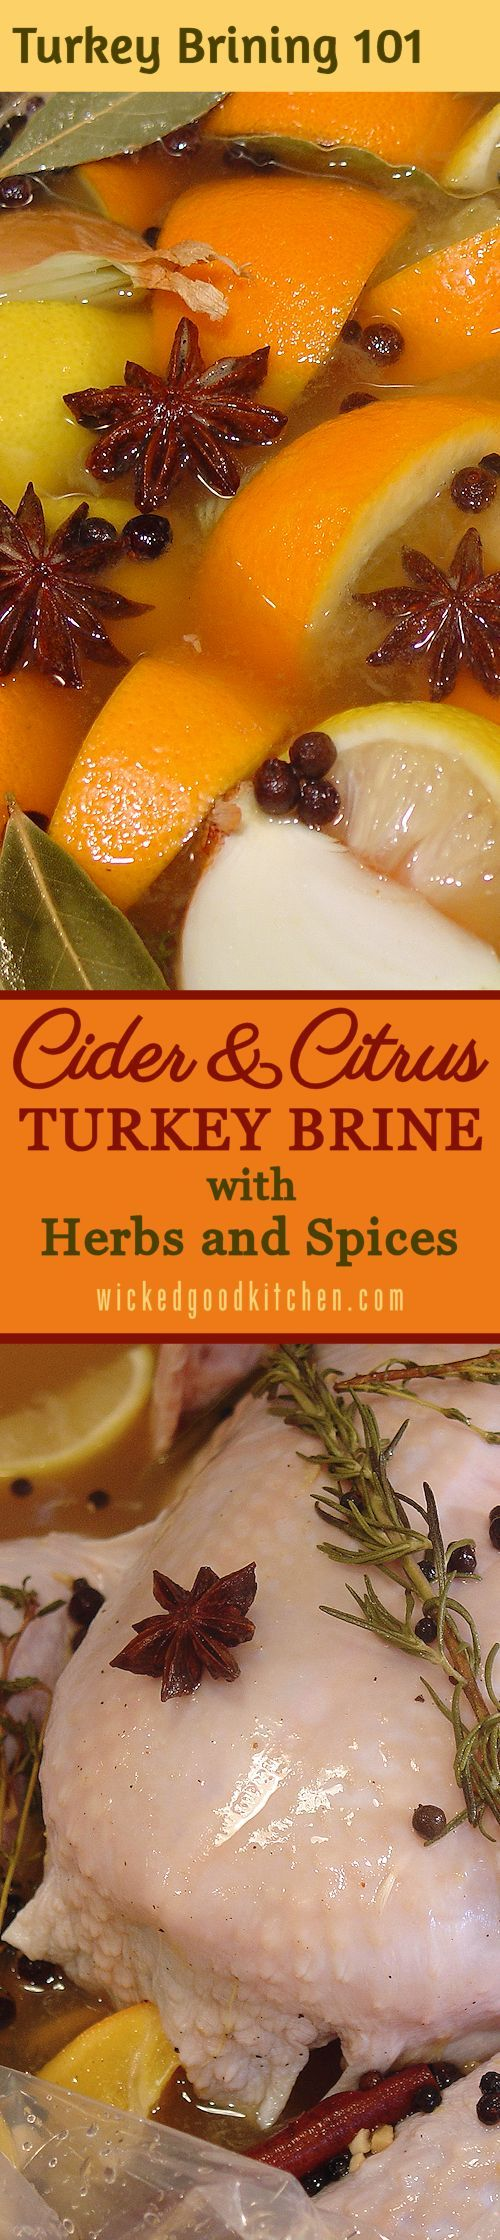 Cider & Citrus Turkey Brine with Herbs and Spices ~  An exceptional turkey brine consisting of both apple cider and citrus juices as well as herbs and spices with just the right amount of salt to ensure a tender, juicy roasted holiday turkey! Includes TURKEY BRINING 101: How-To Tutorial with Step-by-Step Photos & Tips. | #Christmas #Thanksgiving #Holidays diy recipe